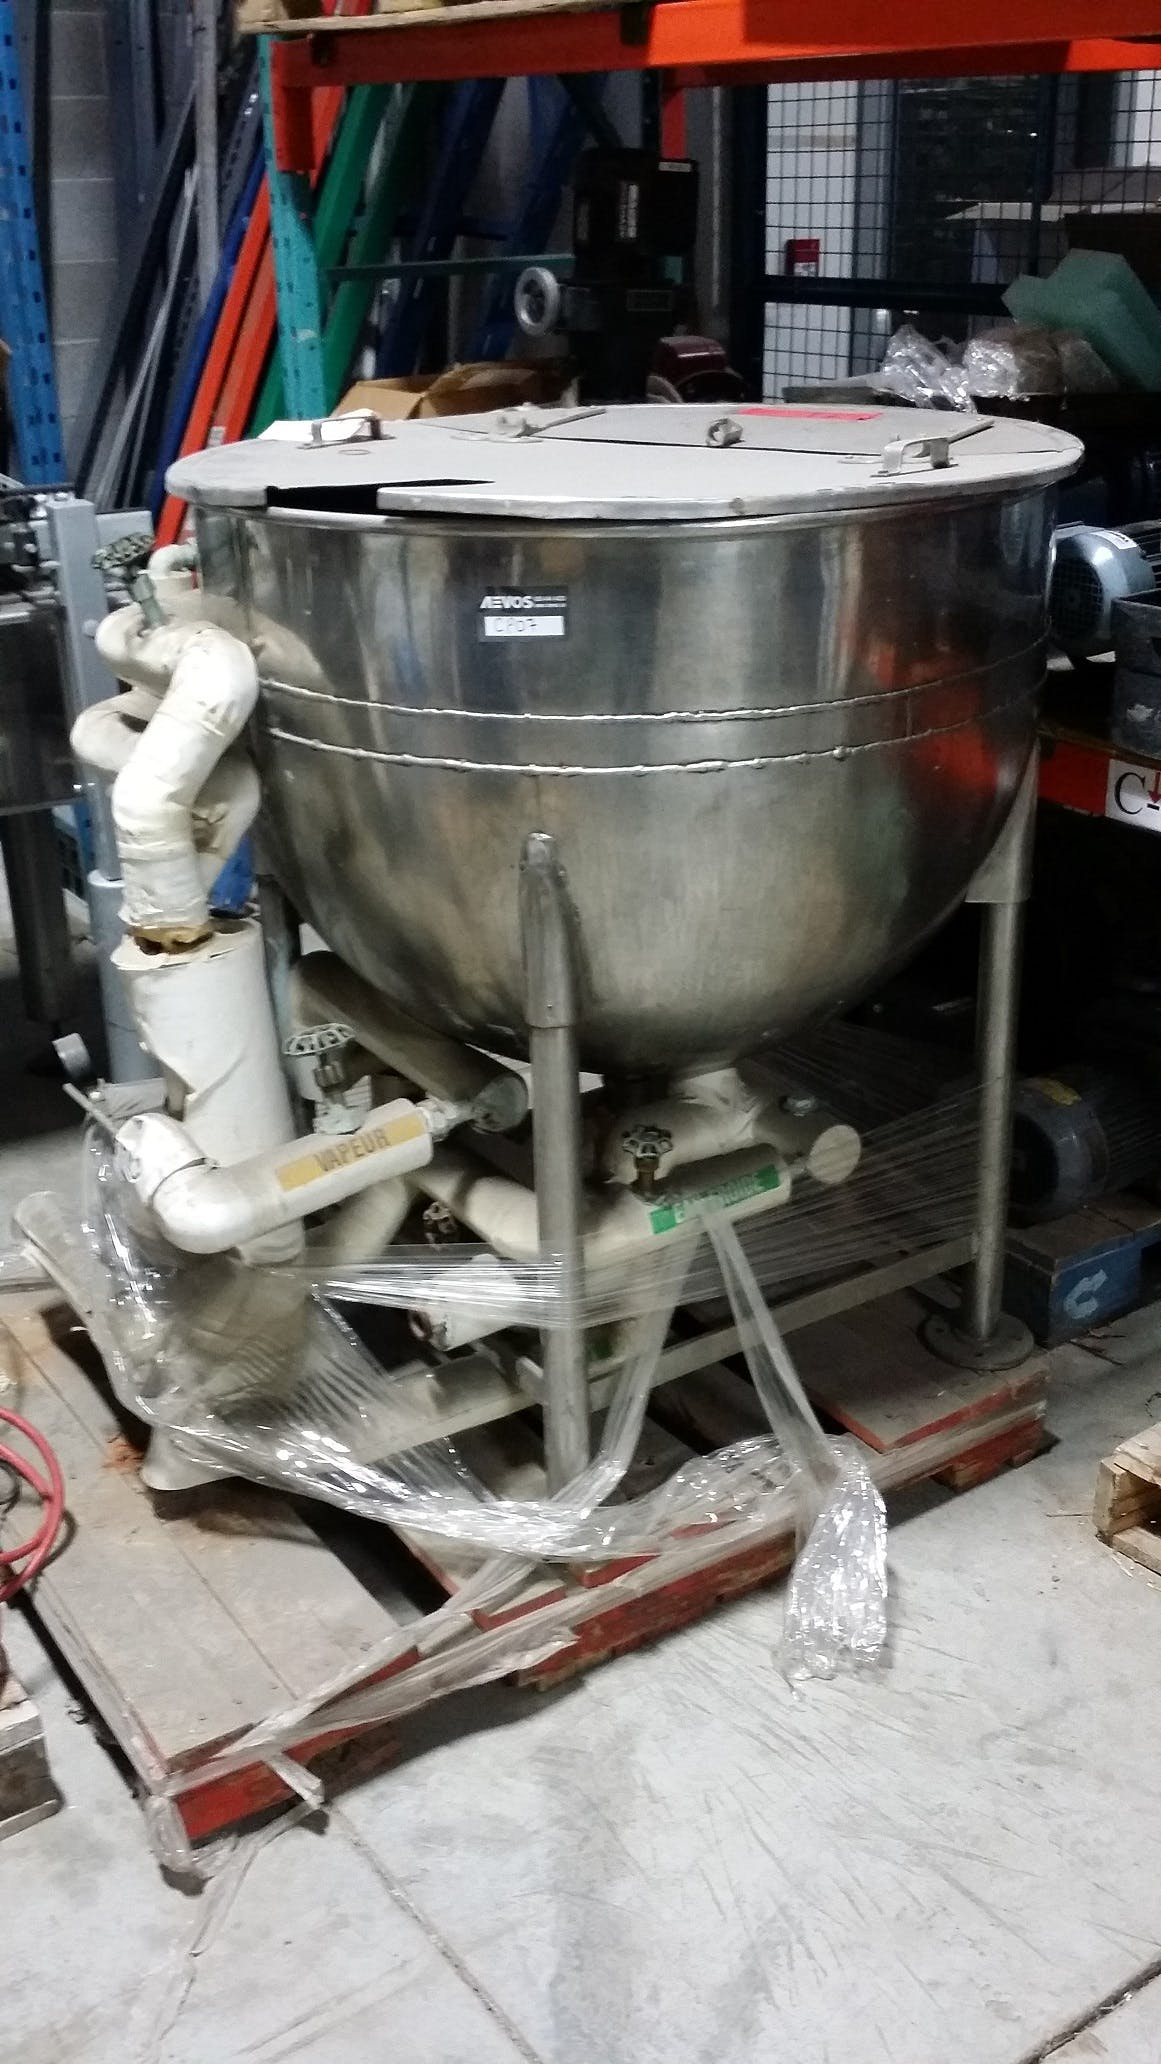 COULTER Jacketed Stainless Steel tank - 400 liters (105 gallons) Food tank sold by Aevos Equipment